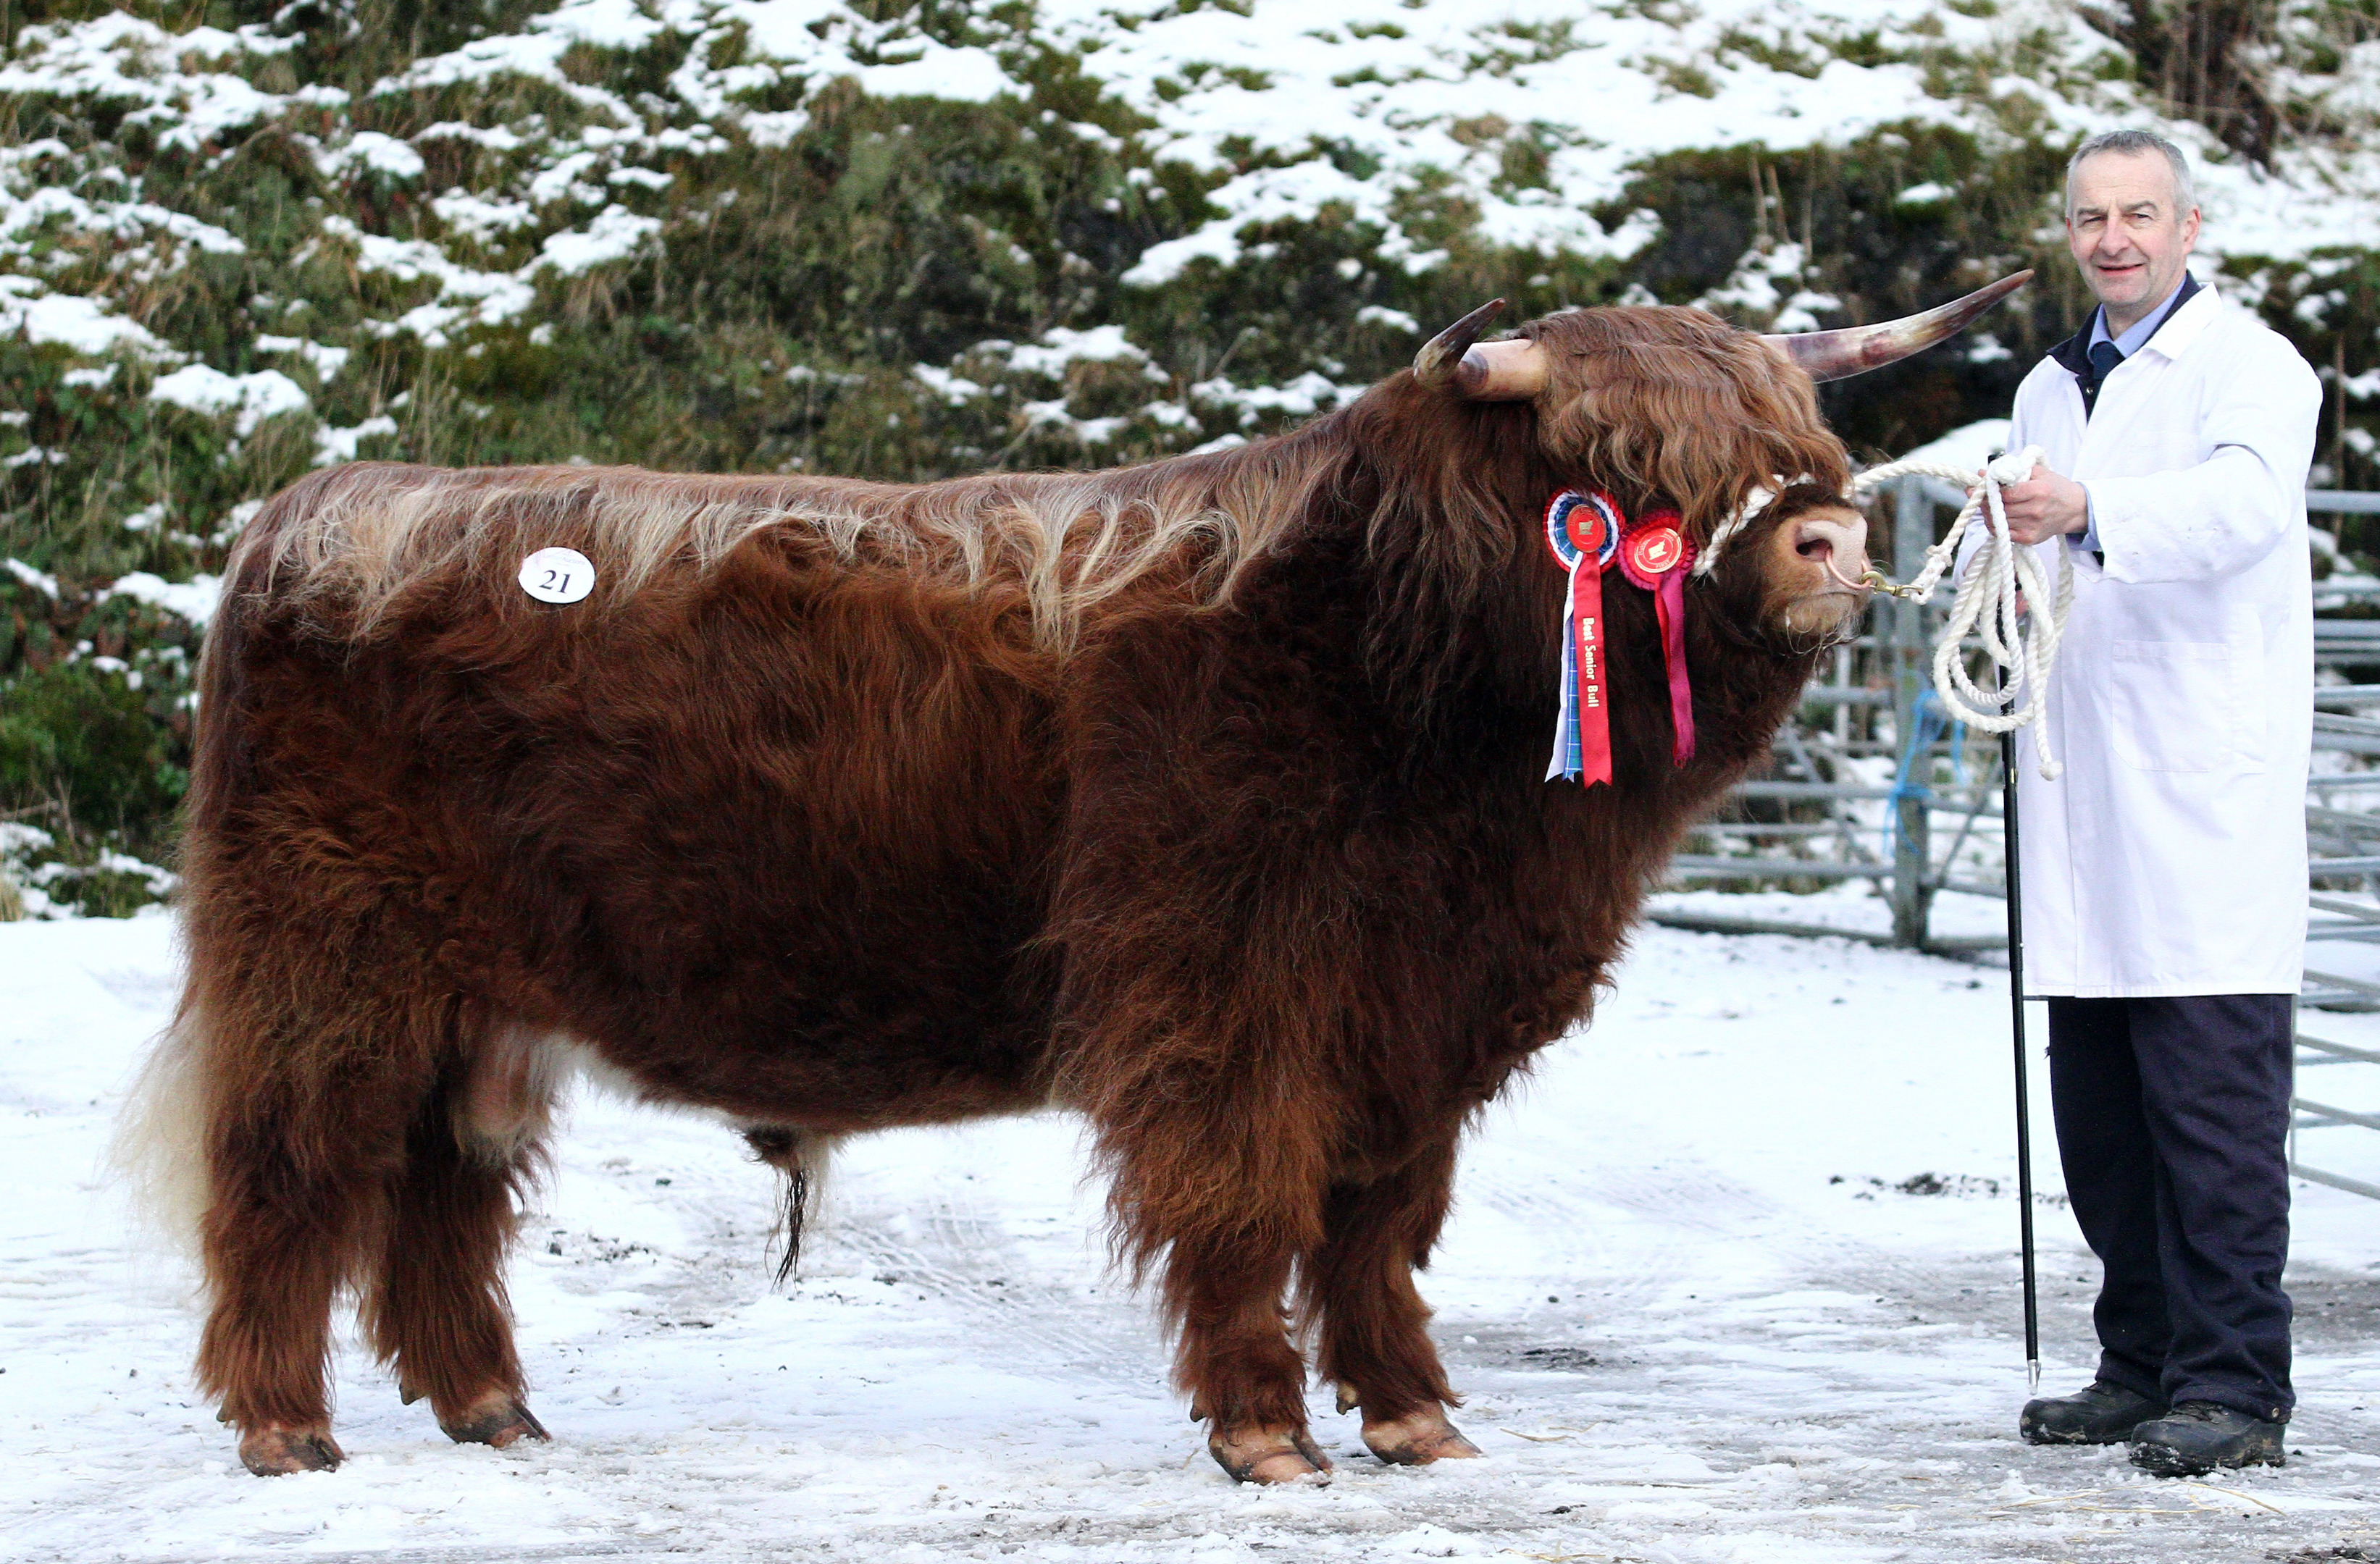 Castles Estate at Dalmally bought the reserve champion, Eoin Mhor 17th of Mottistone for 10,000gns